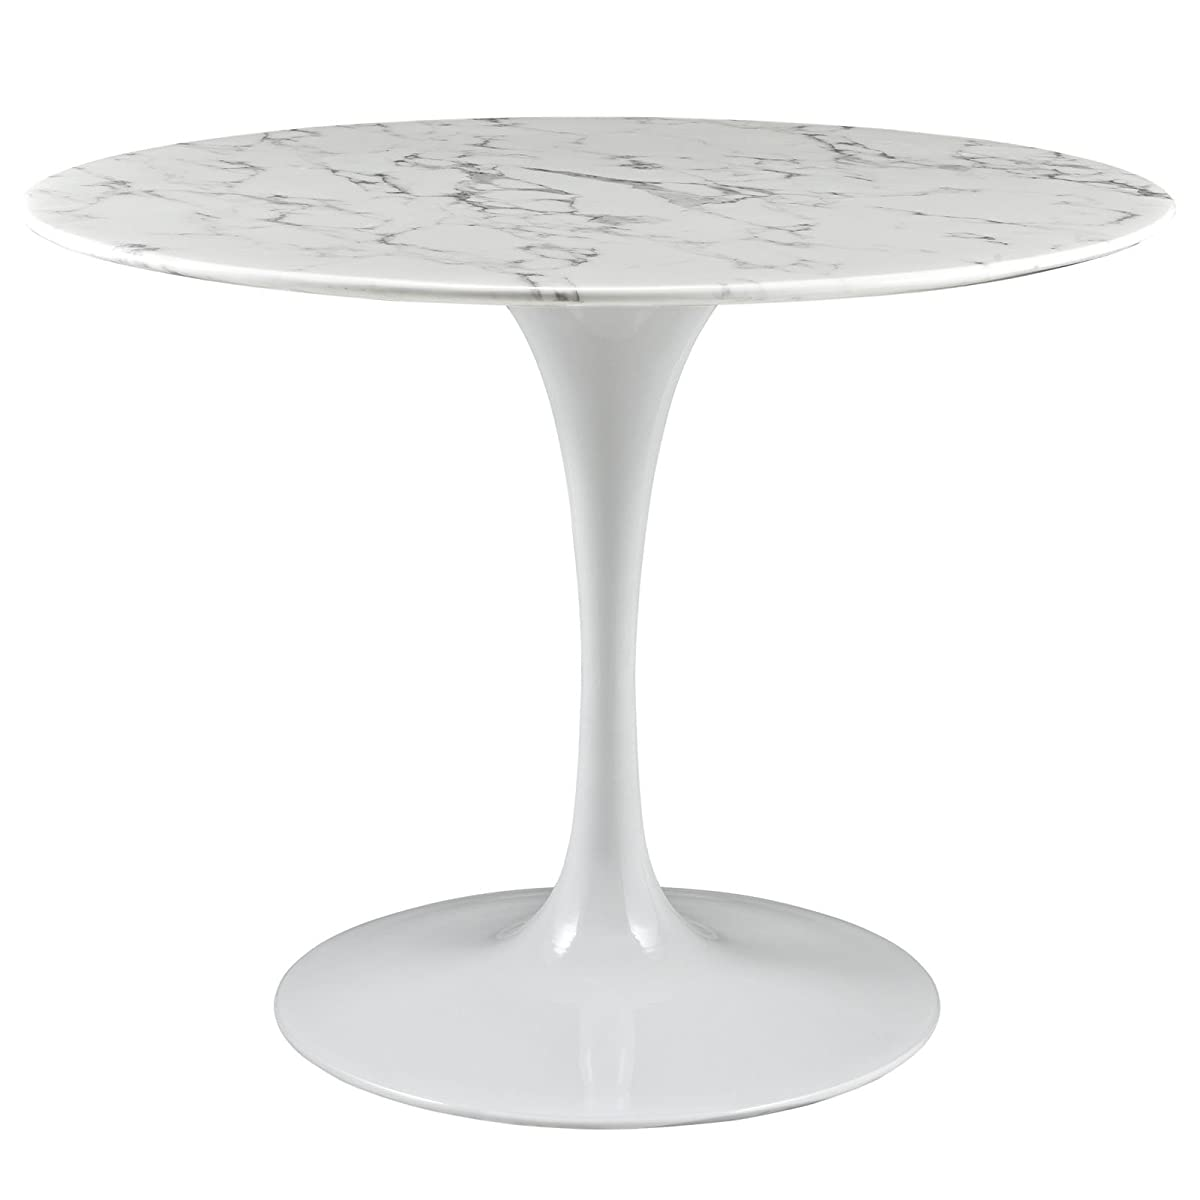 "Modway Lippa 40"" Artificial Marble Dining Table in White"